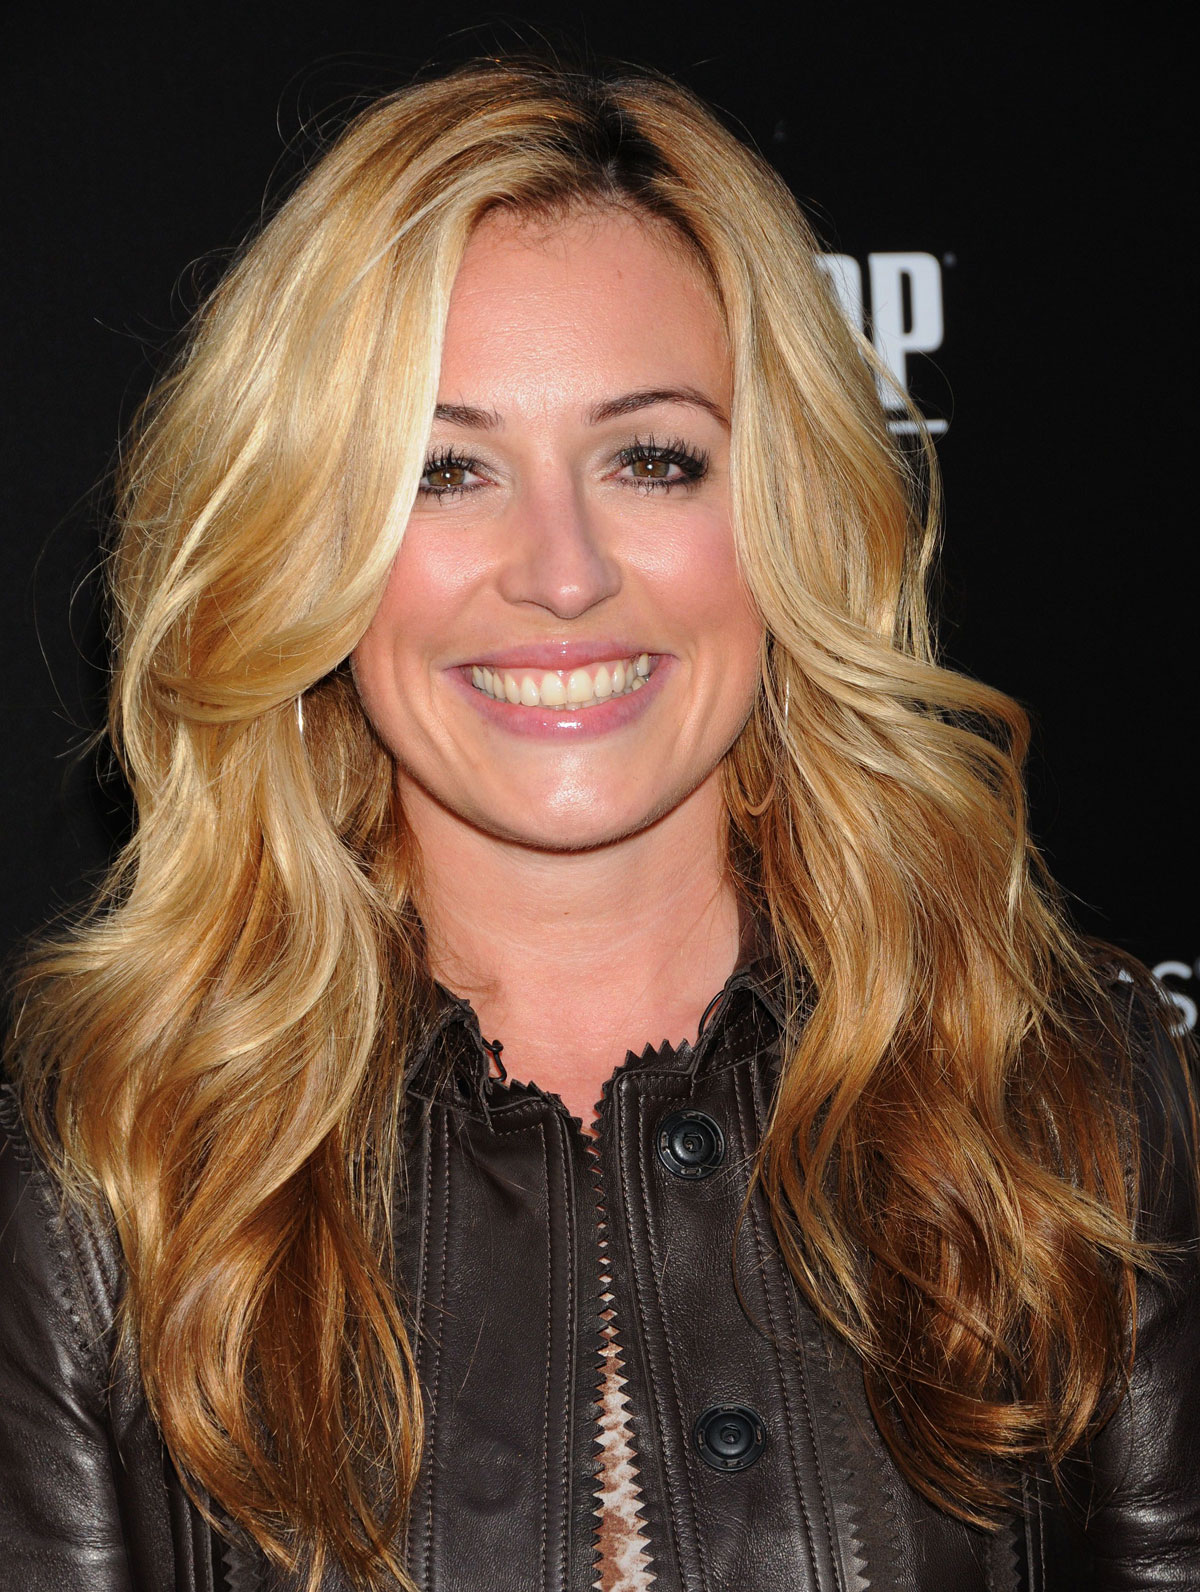 Cat Deeley net worth